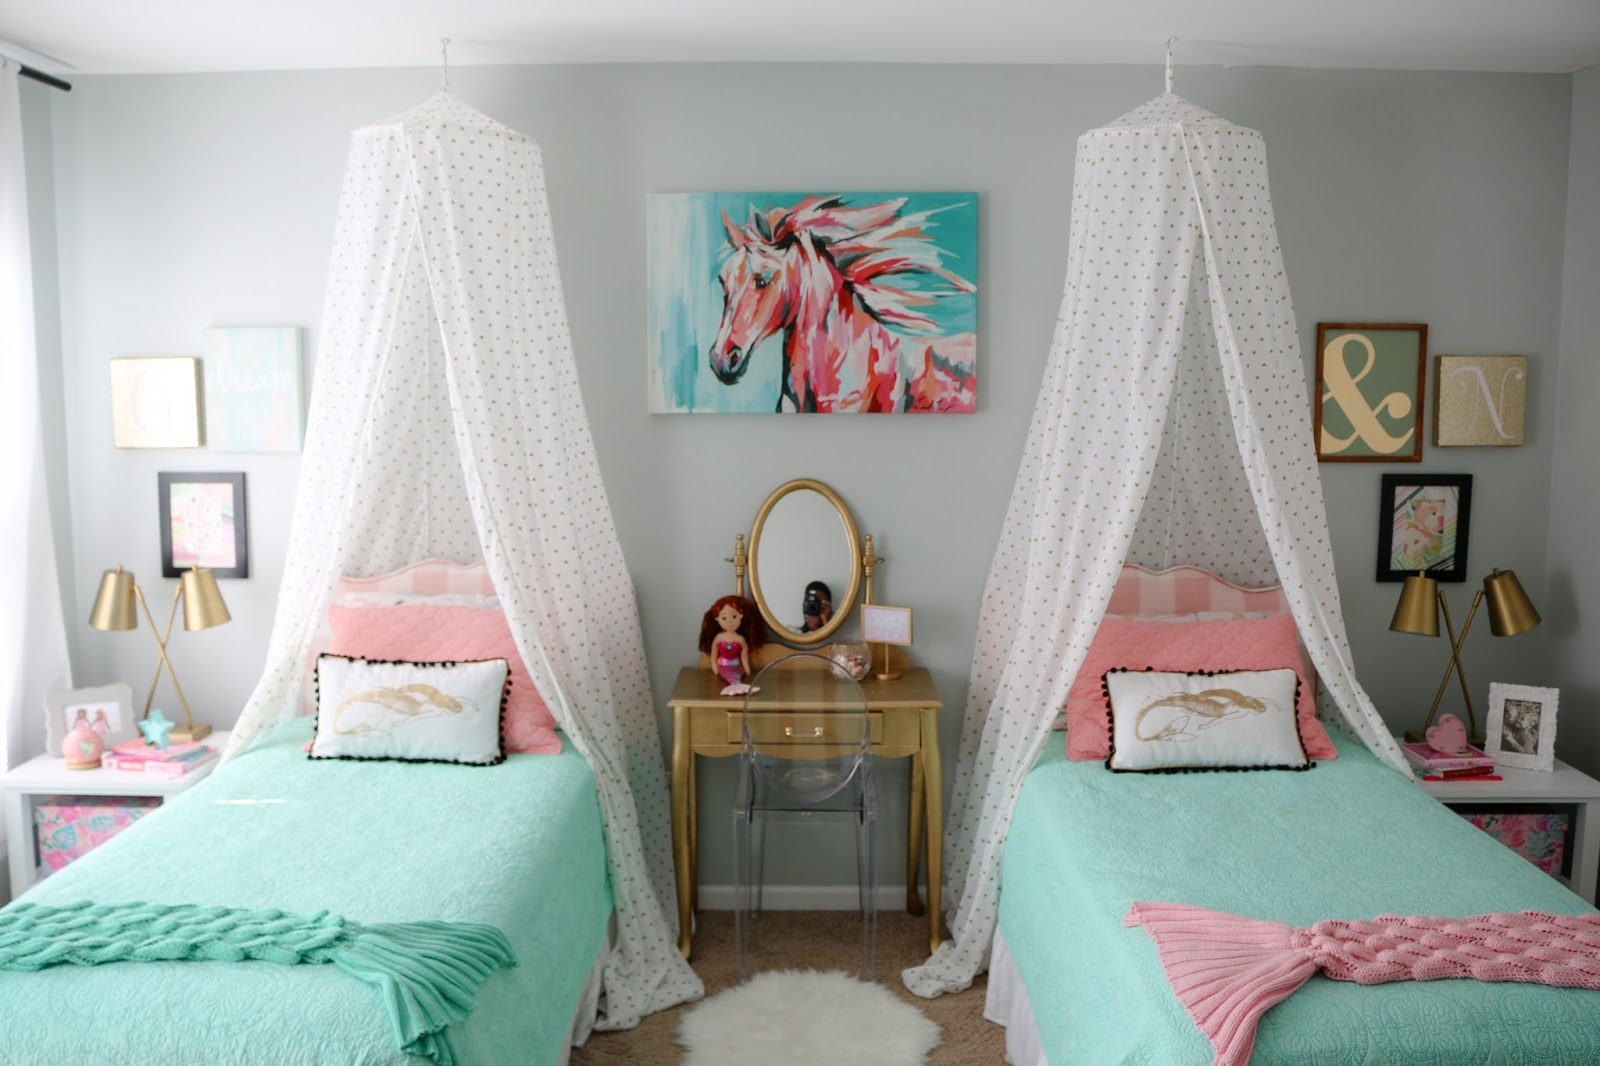 Girls Room: The Girls' Budget Friendly Mermaid Room